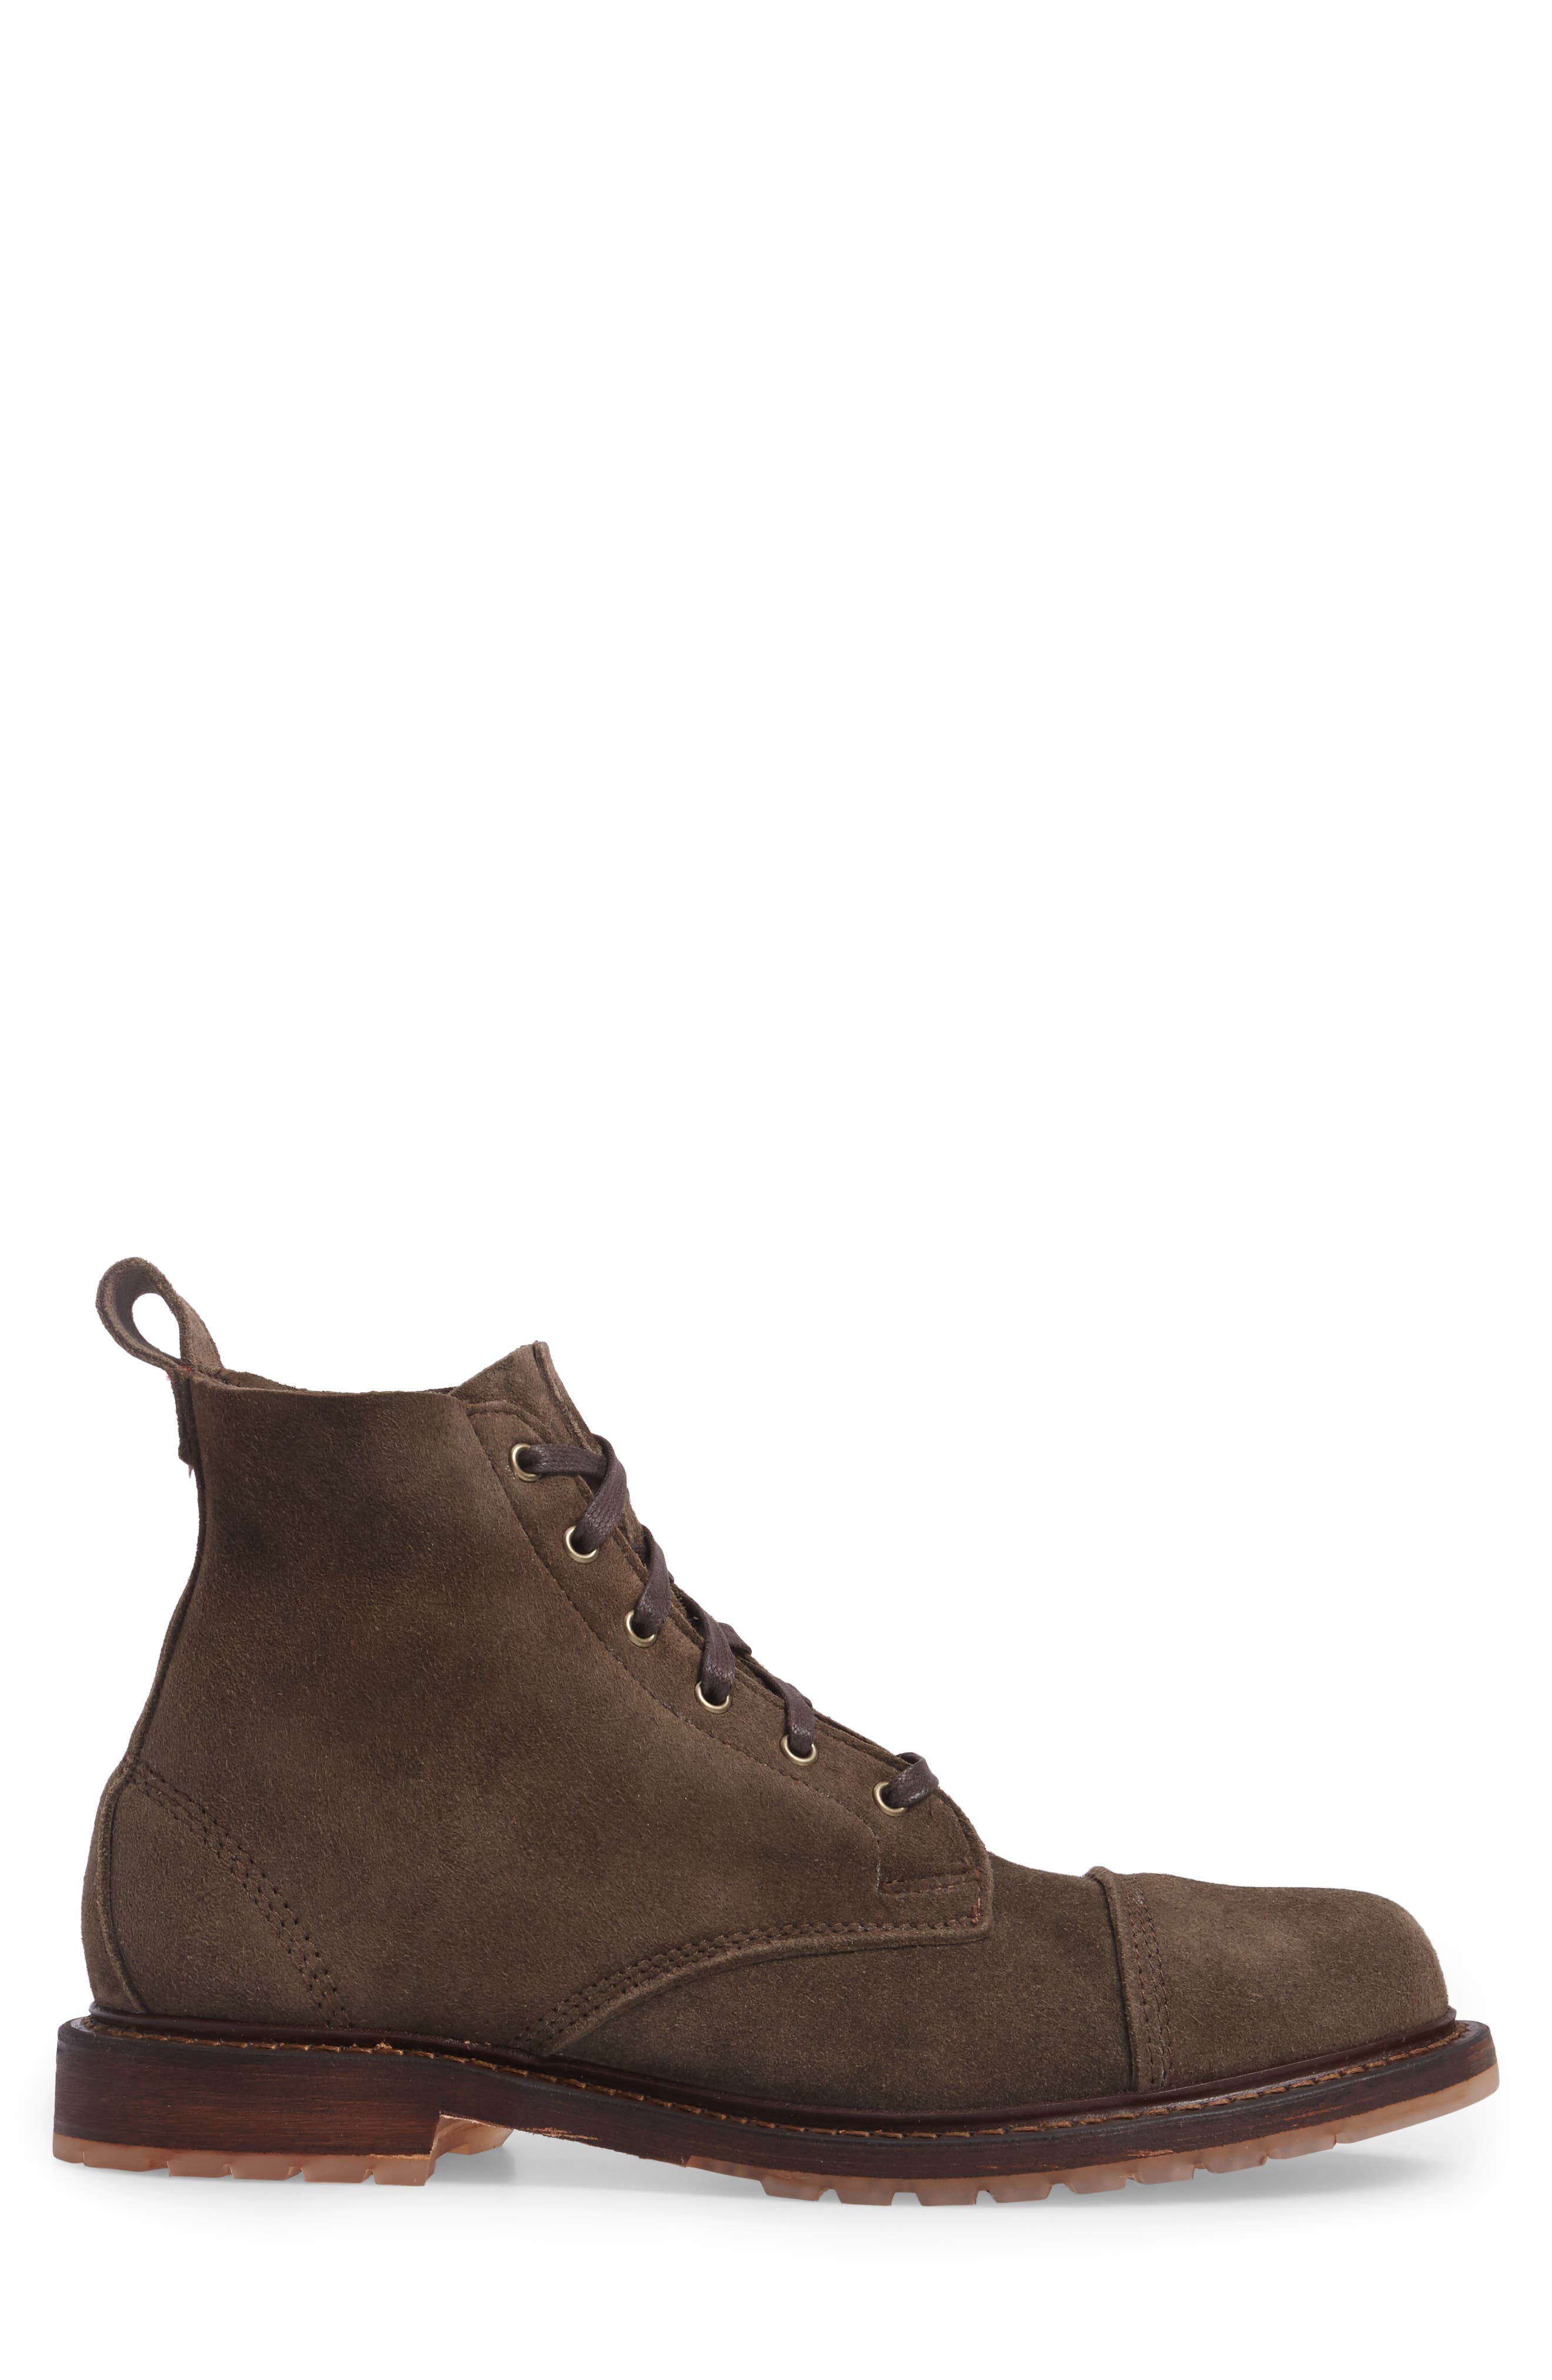 Caen Cap Toe Boot,                             Alternate thumbnail 3, color,                             Taupe Leather